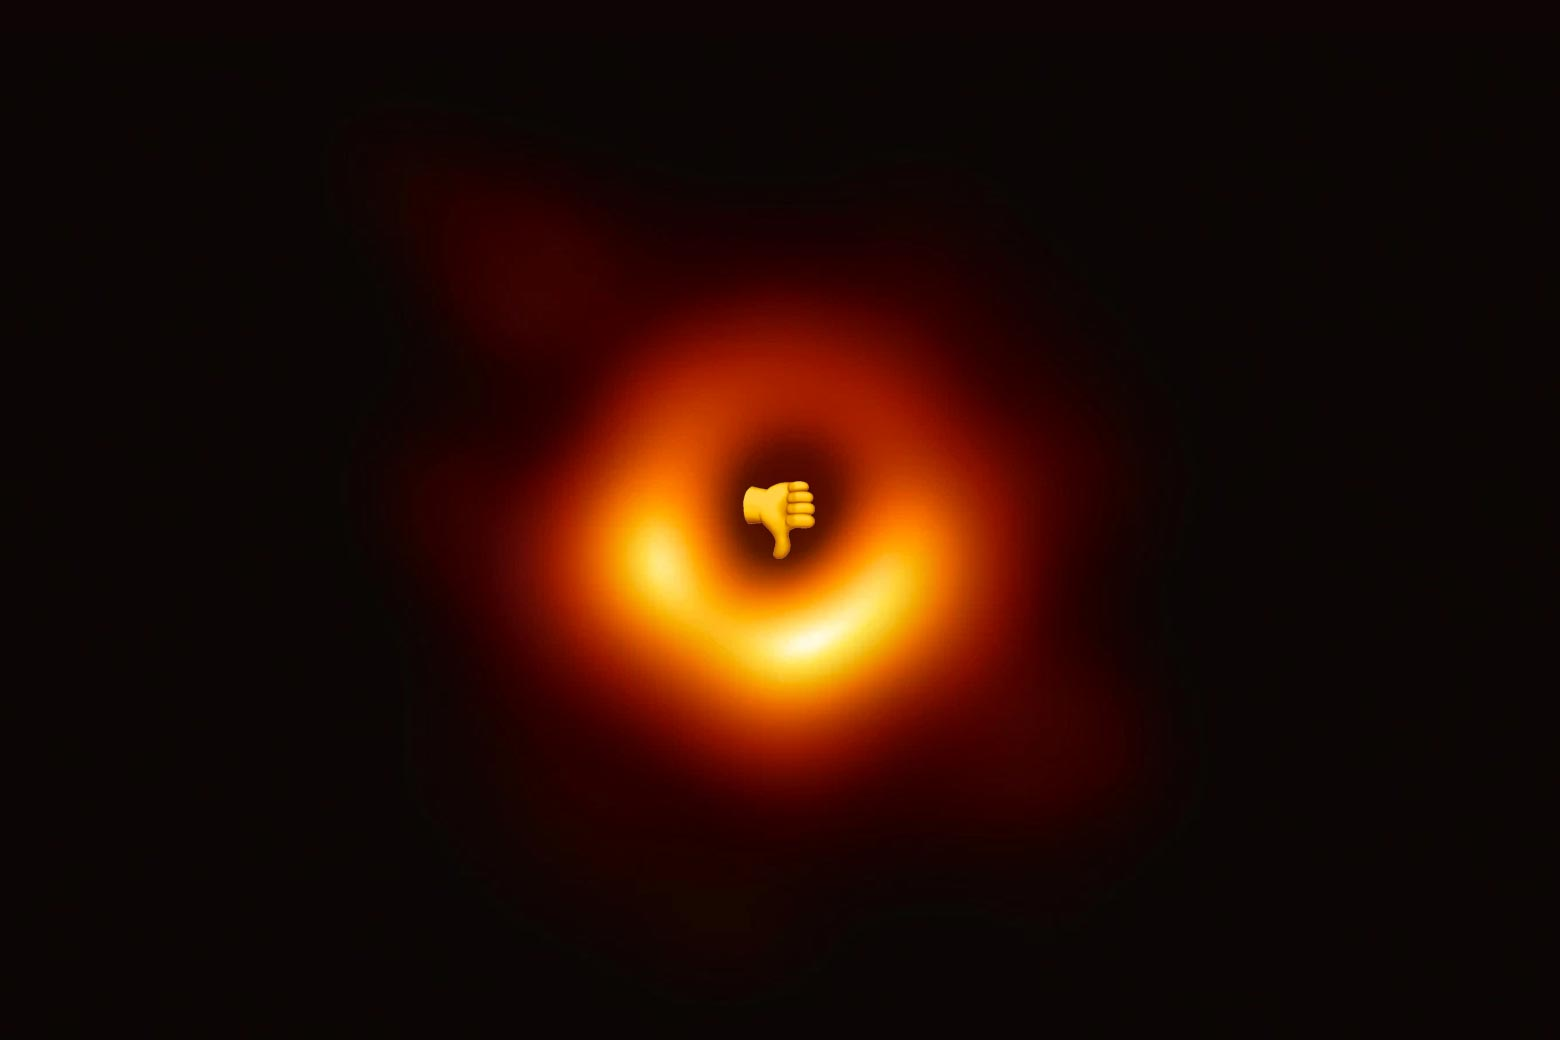 The black hole with a thumbs-down emoji in the center.